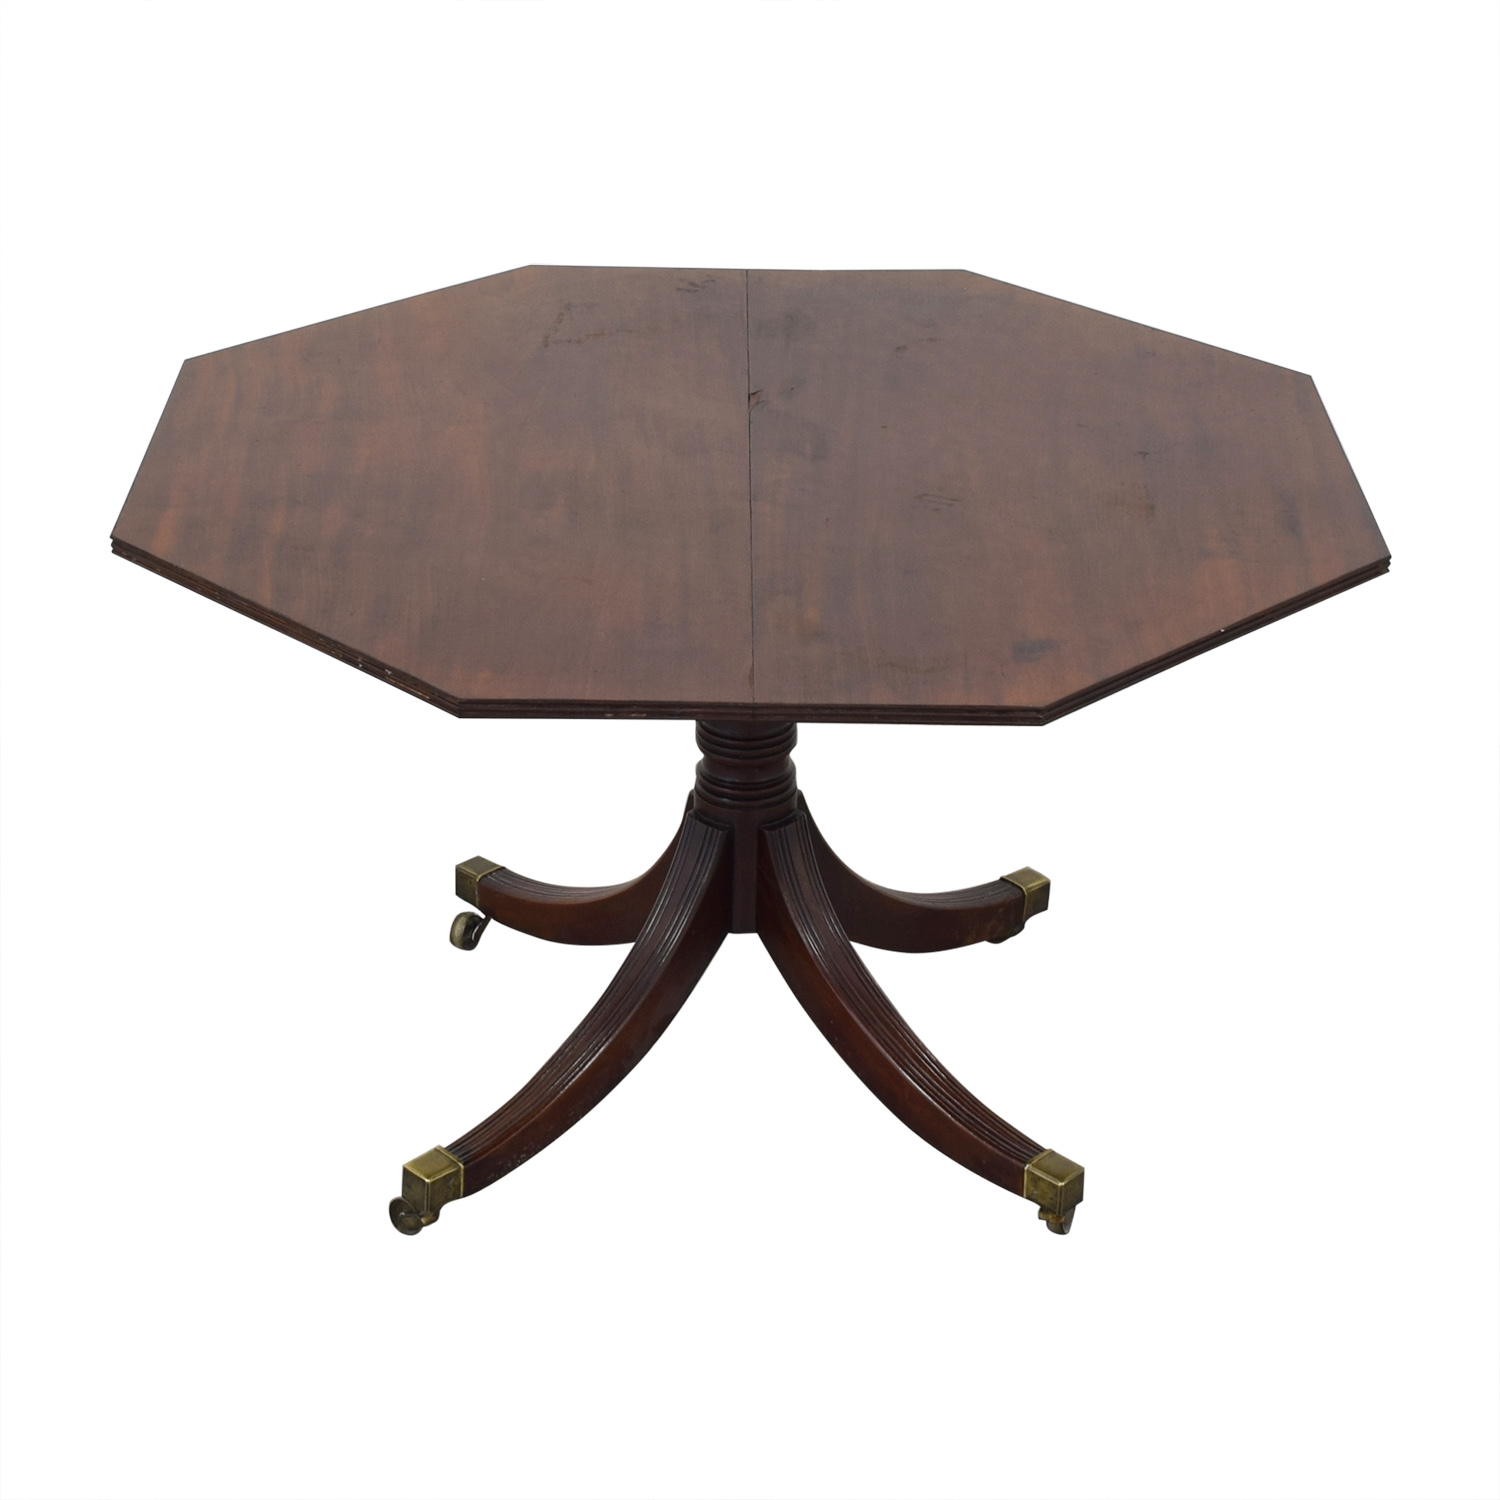 Round Vintage Mahogany Wooden Dining Room Table price